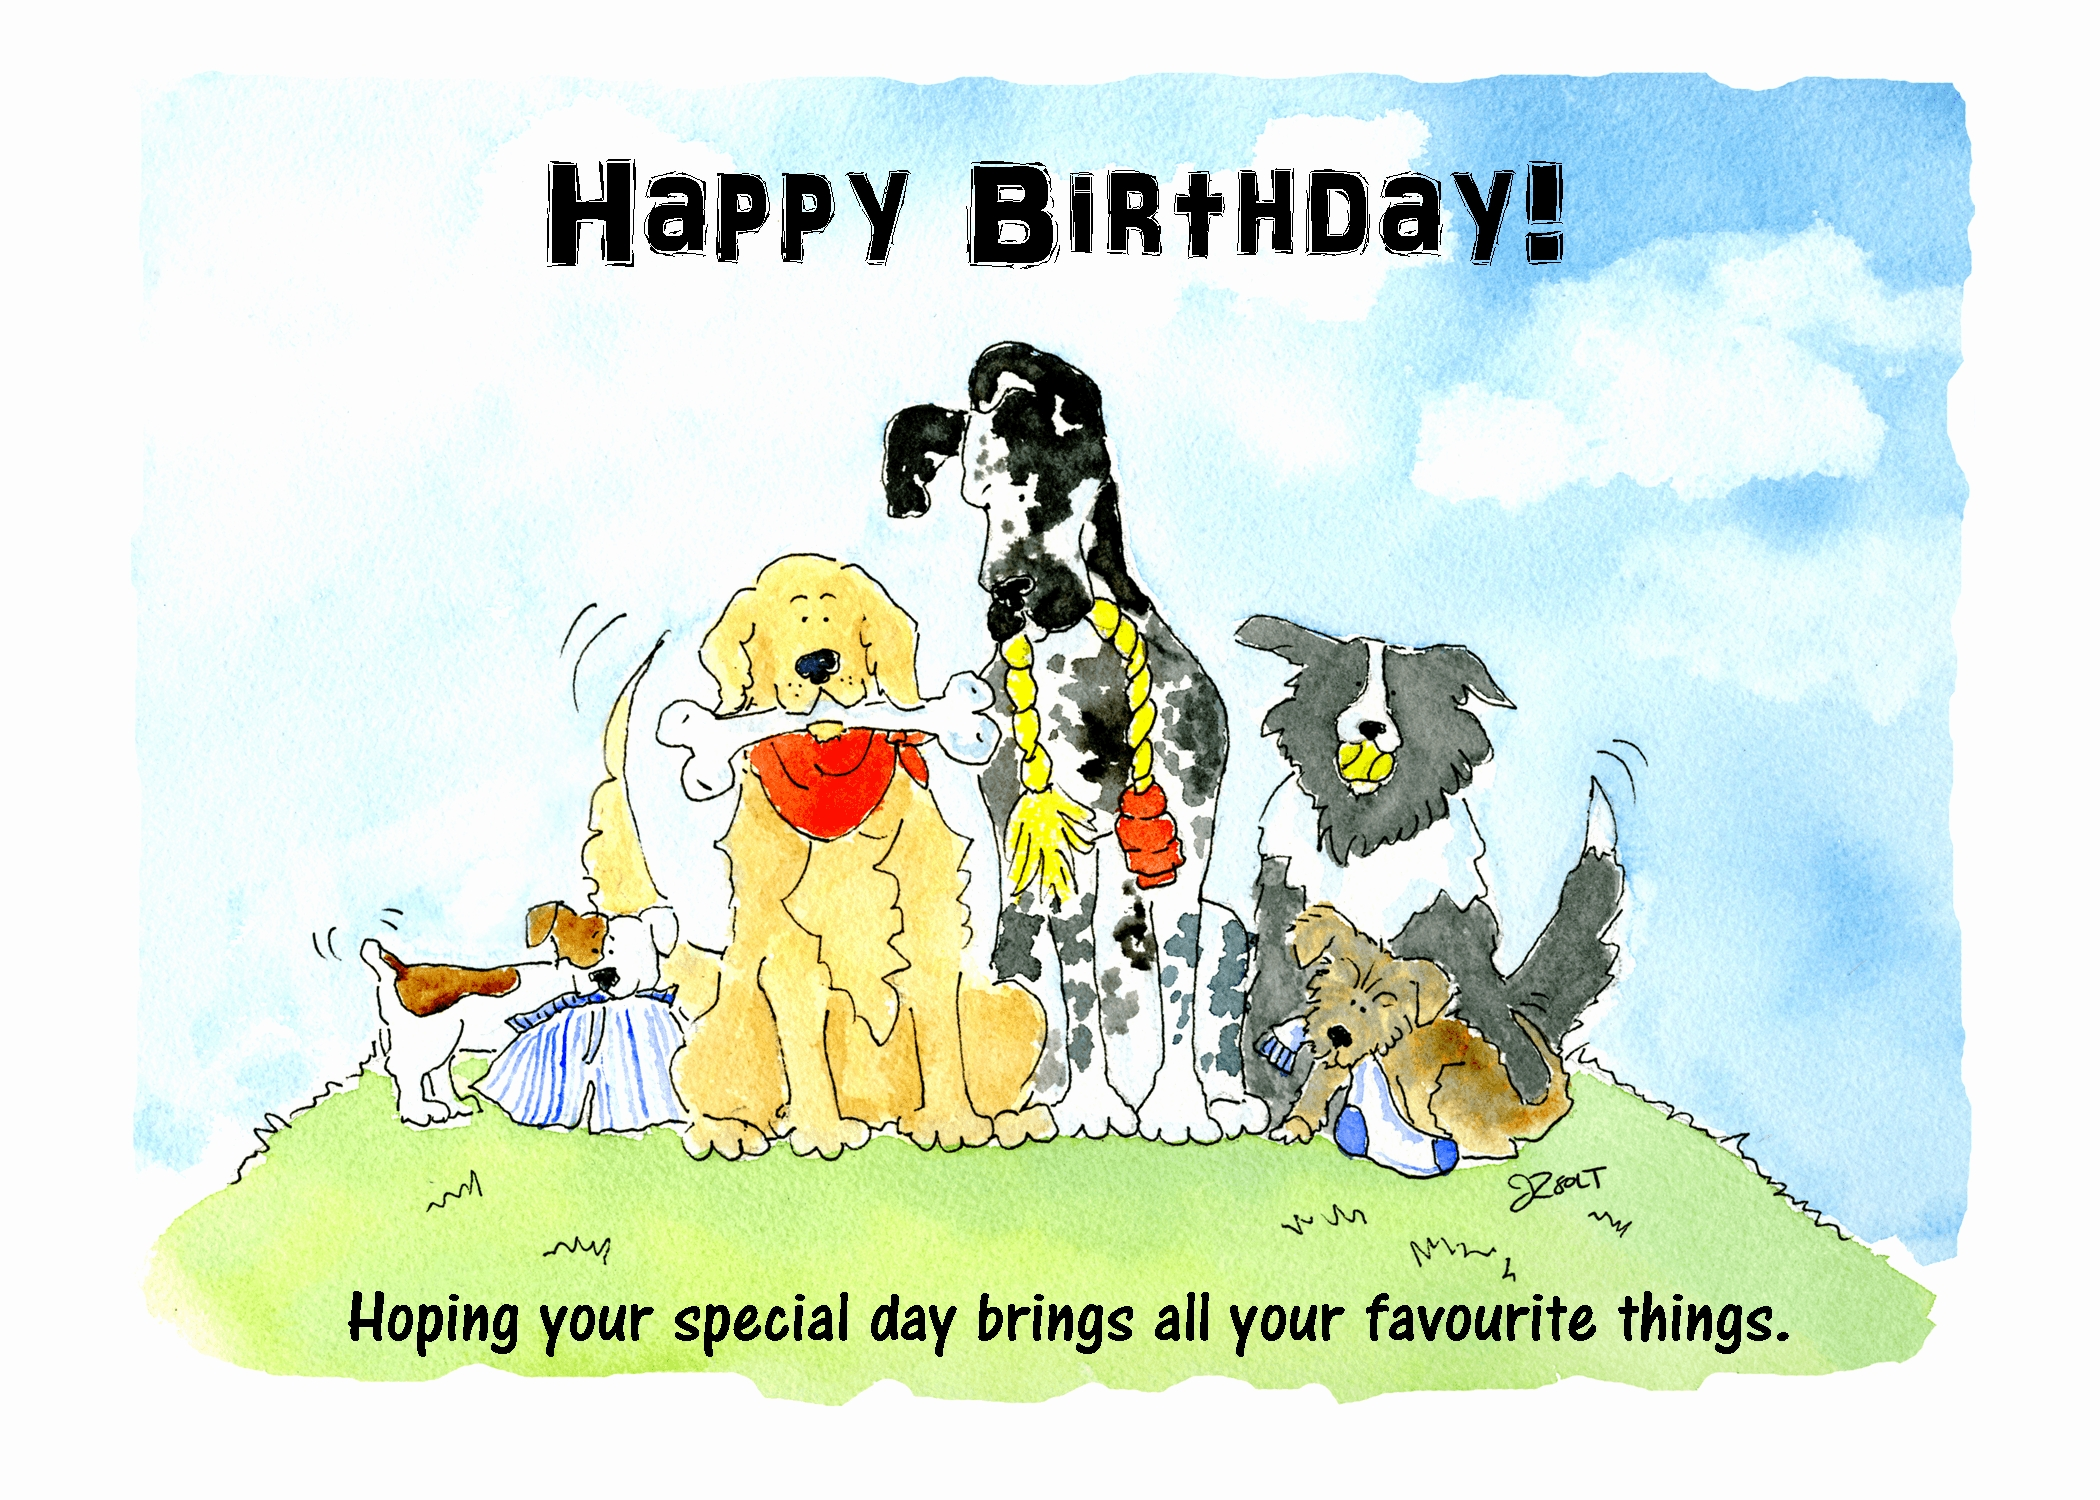 happy birthday dog lover ; find-happy-birthday-images-elegant-pictures-of-dogs-wishing-happy-birthday-to-a-dog-lover-of-find-happy-birthday-images